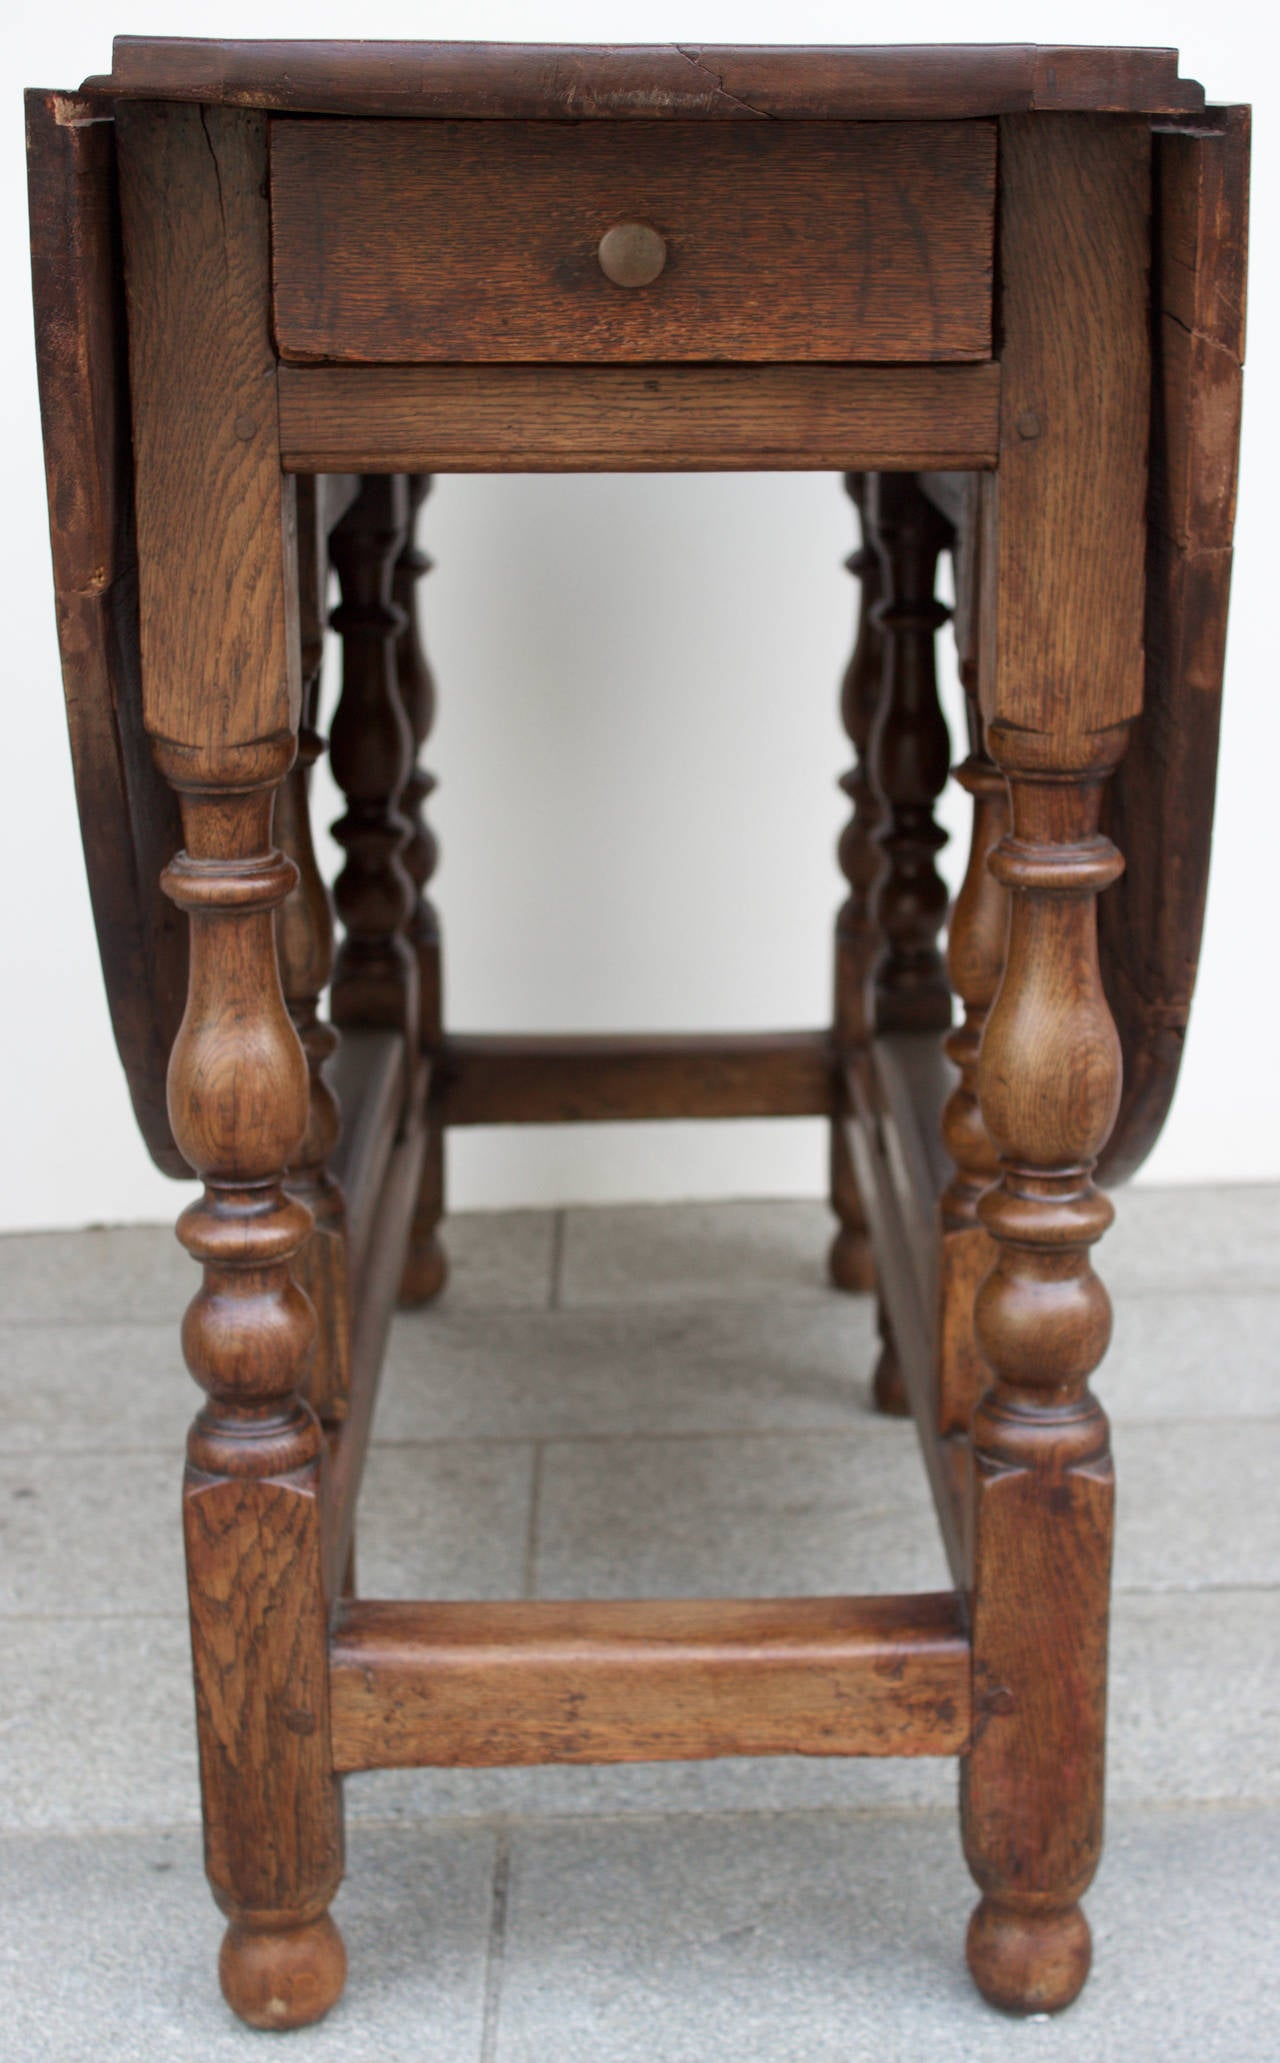 Fine French gateleg table entirely handmade with twin flaps and one drawer. Beautifully turned feet and lovely patina. Can be used as dining table, breakfast table, center table or behind a sofa.